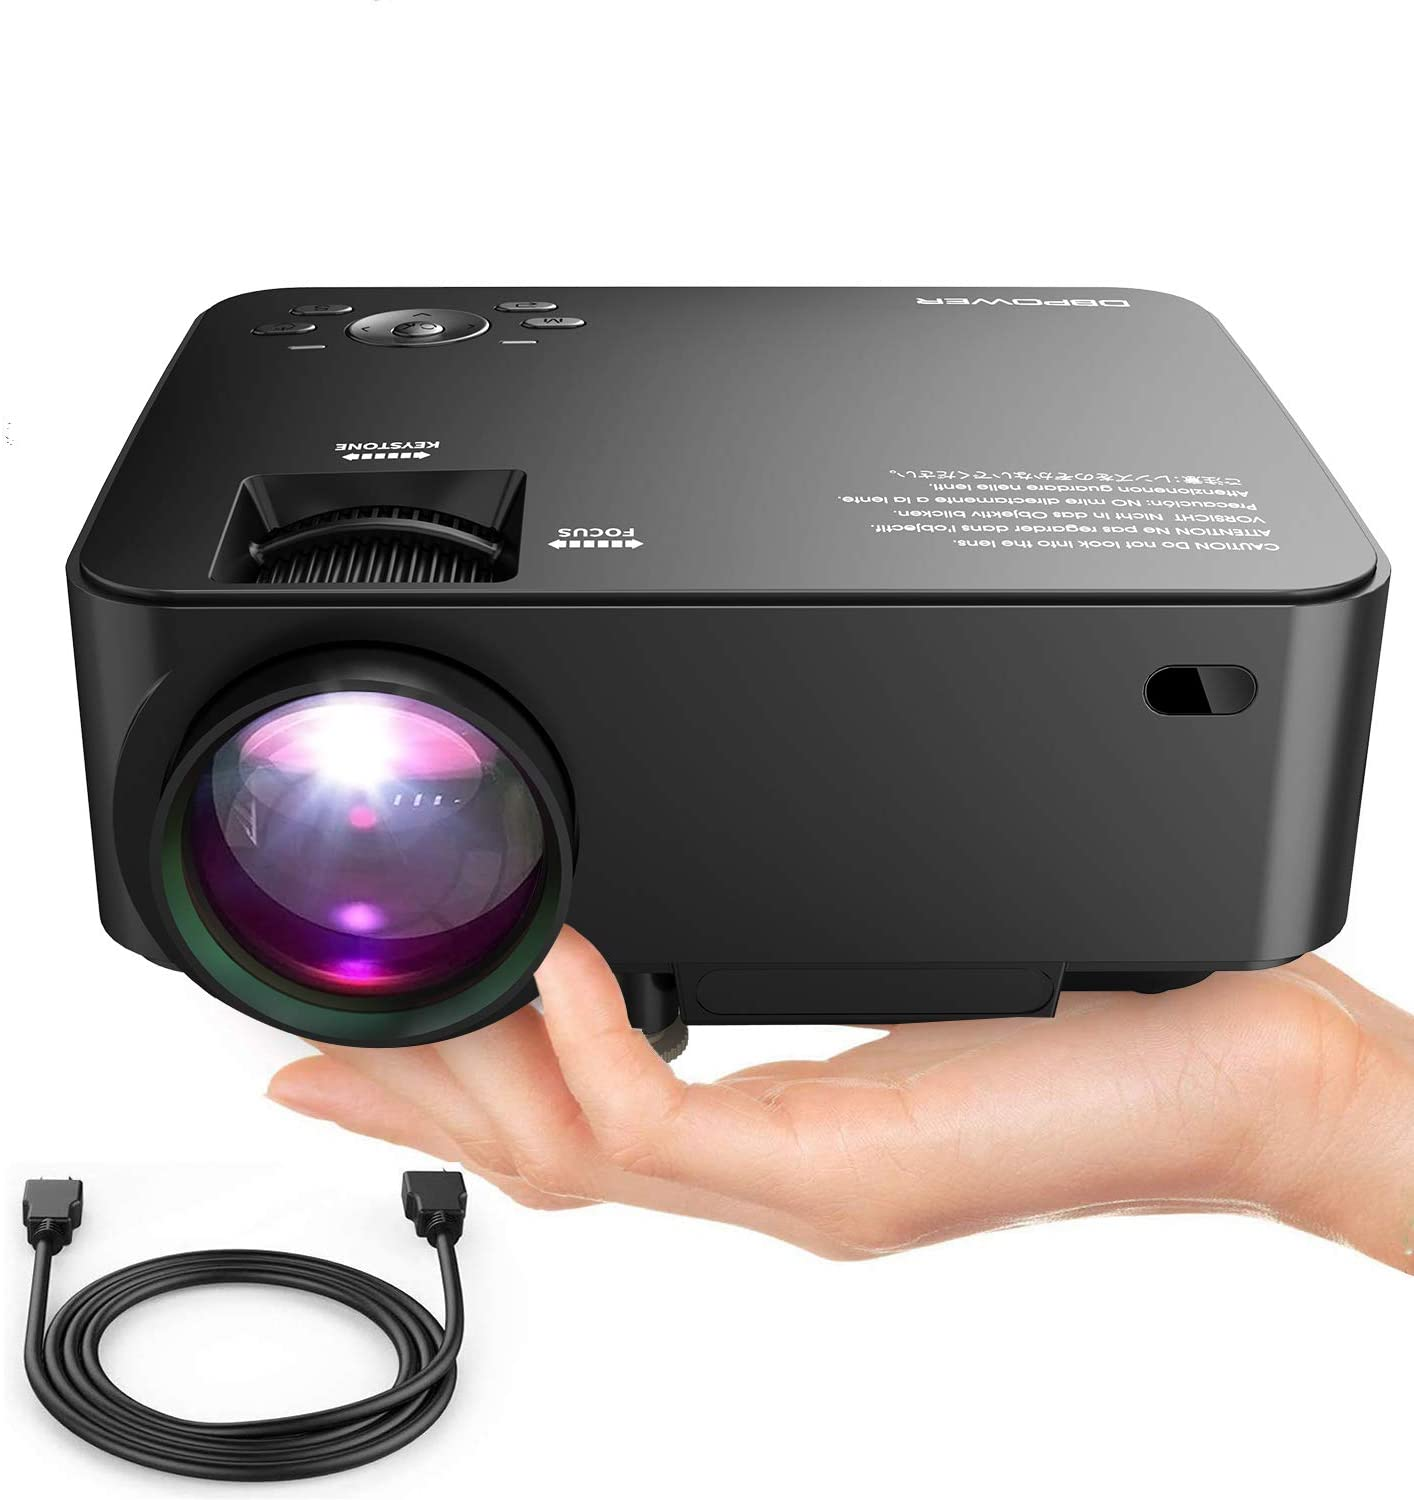 DBPOWER T20 LCD Mini Movie Projector, Multimedia Home Theater Video Projector with HDMI Cable, Support 1080P HDMI USB SD Card VGA AV TV Laptop Game ...